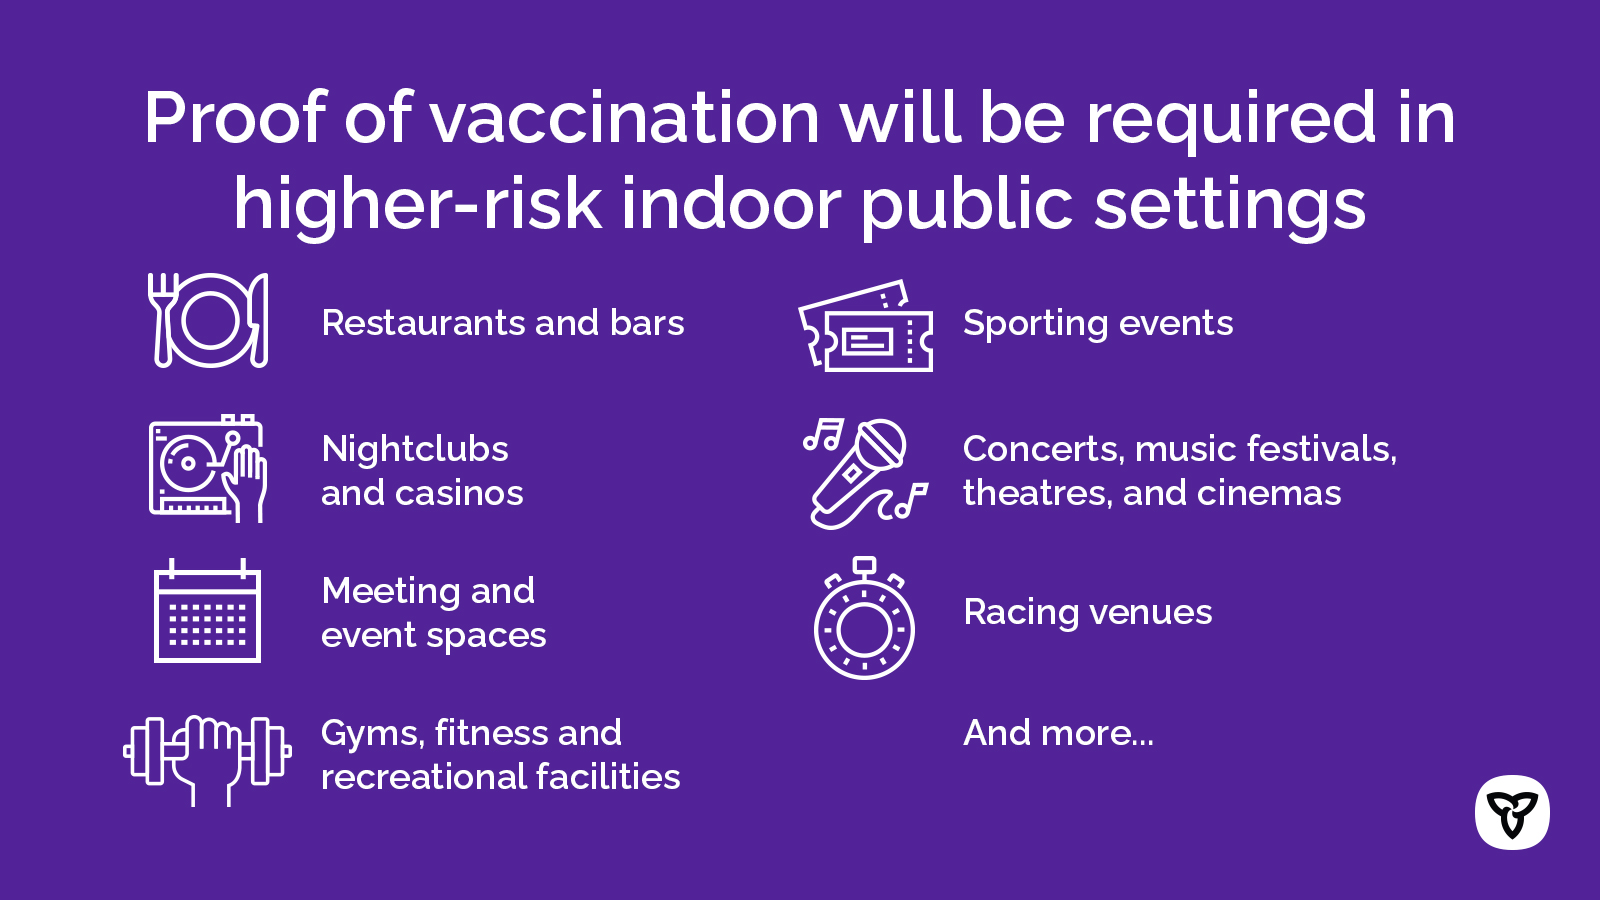 As of September 22, 2021, Ontarians will need to be fully vaccinated (two doses plus 14 days) and provide their proof of vaccination along with photo ID to access certain public settings and facilities. This approach focuses on higher-risk indoor public settings where face coverings cannot always be worn and includes:  Restaurants and bars (excluding outdoor patios, as well as delivery and takeout); Nightclubs (including outdoor areas of the establishment); Meeting and event spaces, such as banquet halls and conference/convention centres; Facilities used for sports and fitness activities and personal fitness training, such as gyms, fitness and recreational facilities with the exception of youth recreational sport; Sporting events; Casinos, bingo halls and gaming establishments; Concerts, music festivals, theatres and cinemas; Strip clubs, bathhouses and sex clubs; Racing venues (e.g., horse racing).